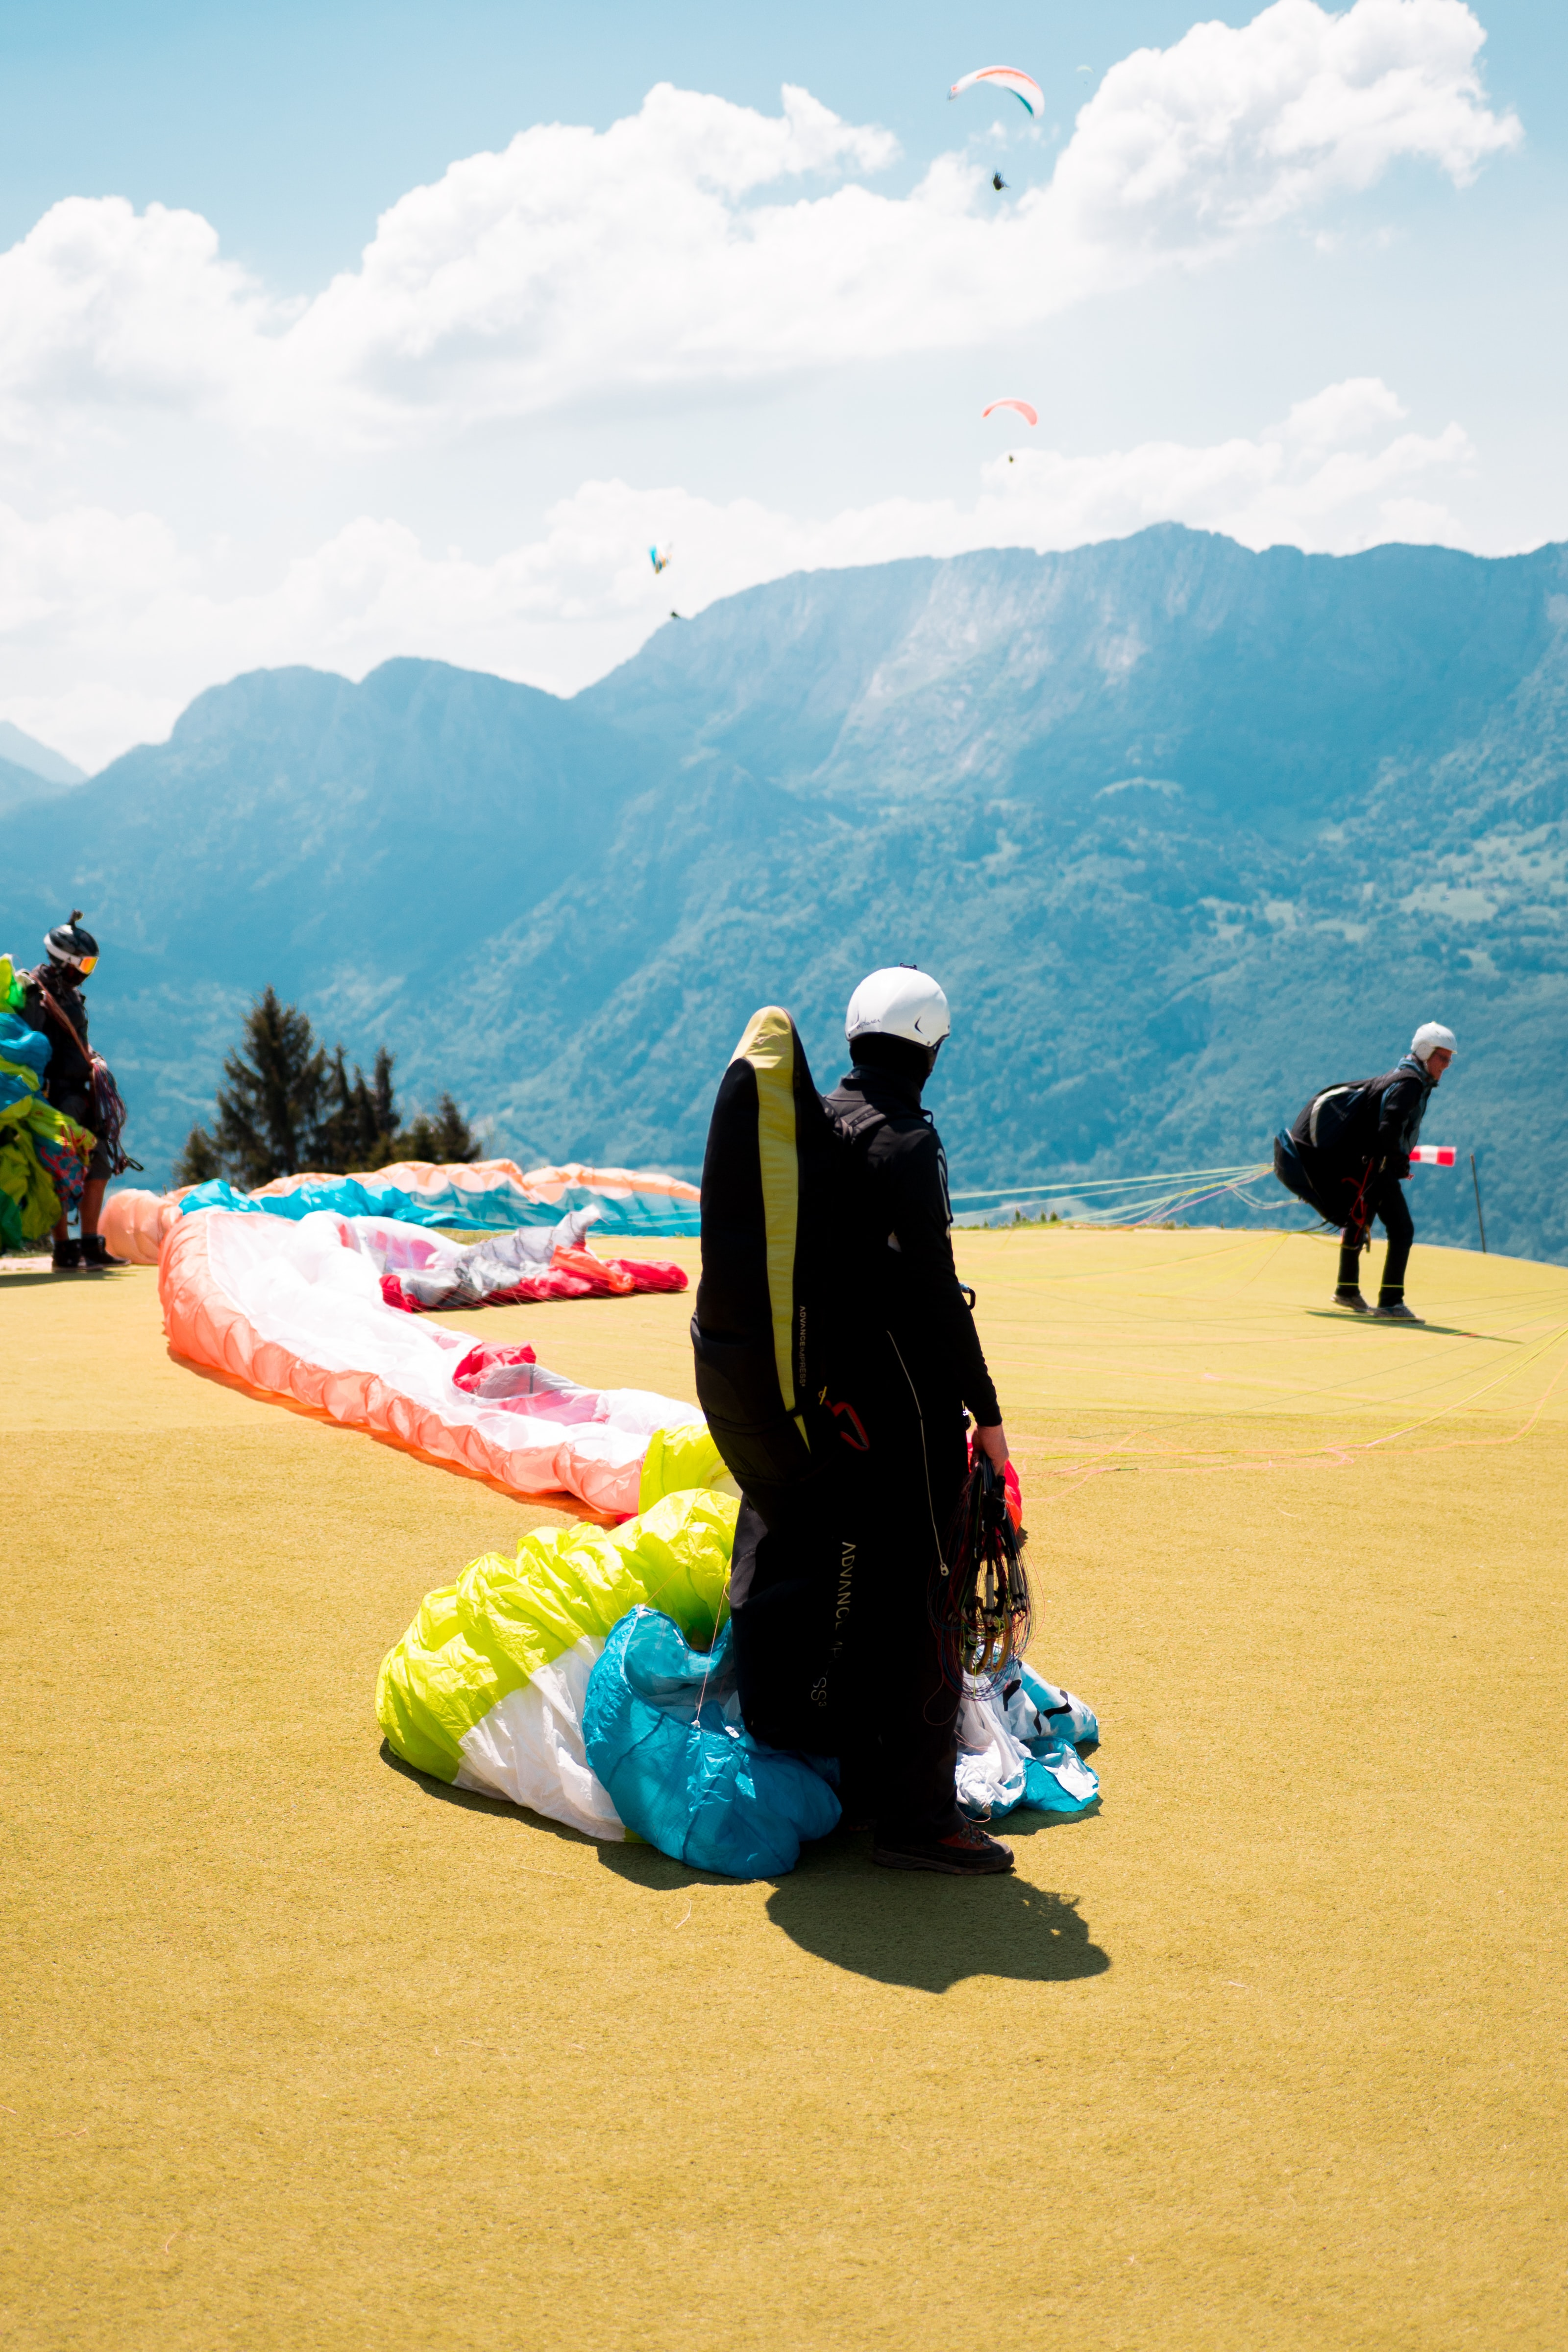 paraglider buckled in black, yellow, and blue parachute while standing on yellow hill near man preparing to jump overlooking mountain ridges under white cloudy skies at daytime